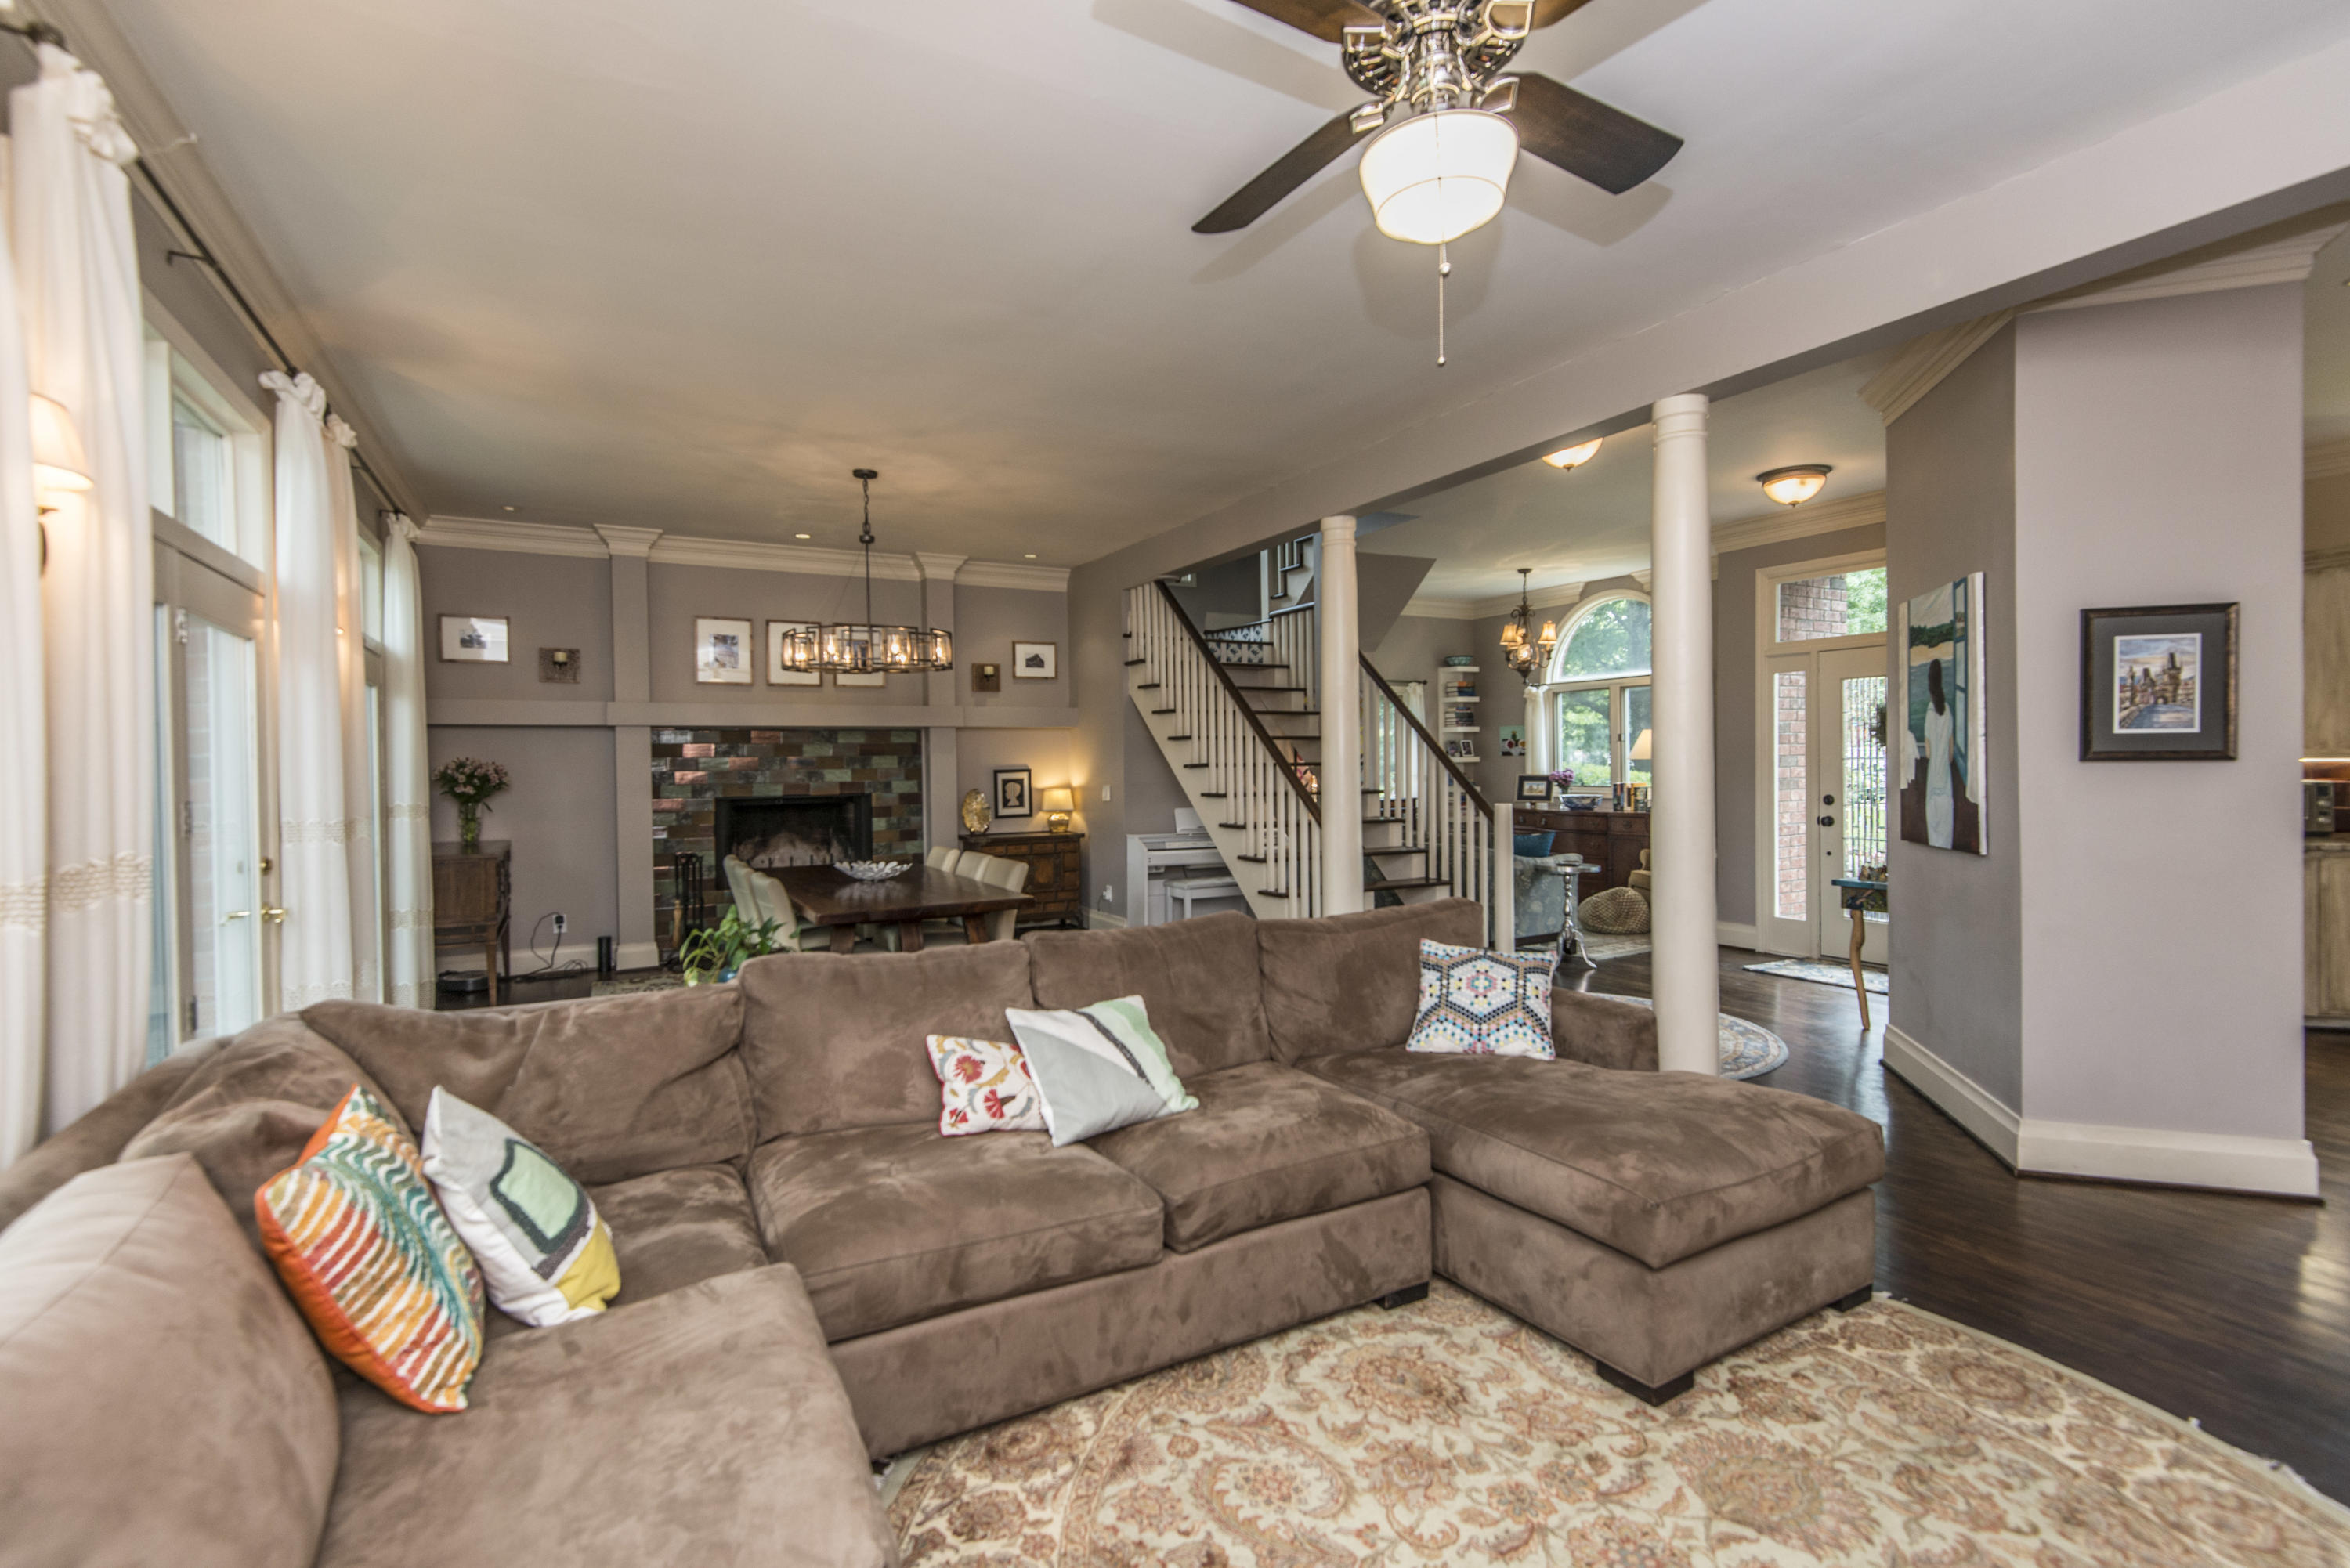 Stiles Point Plantation Homes For Sale - 921 Cotton House, Charleston, SC - 42